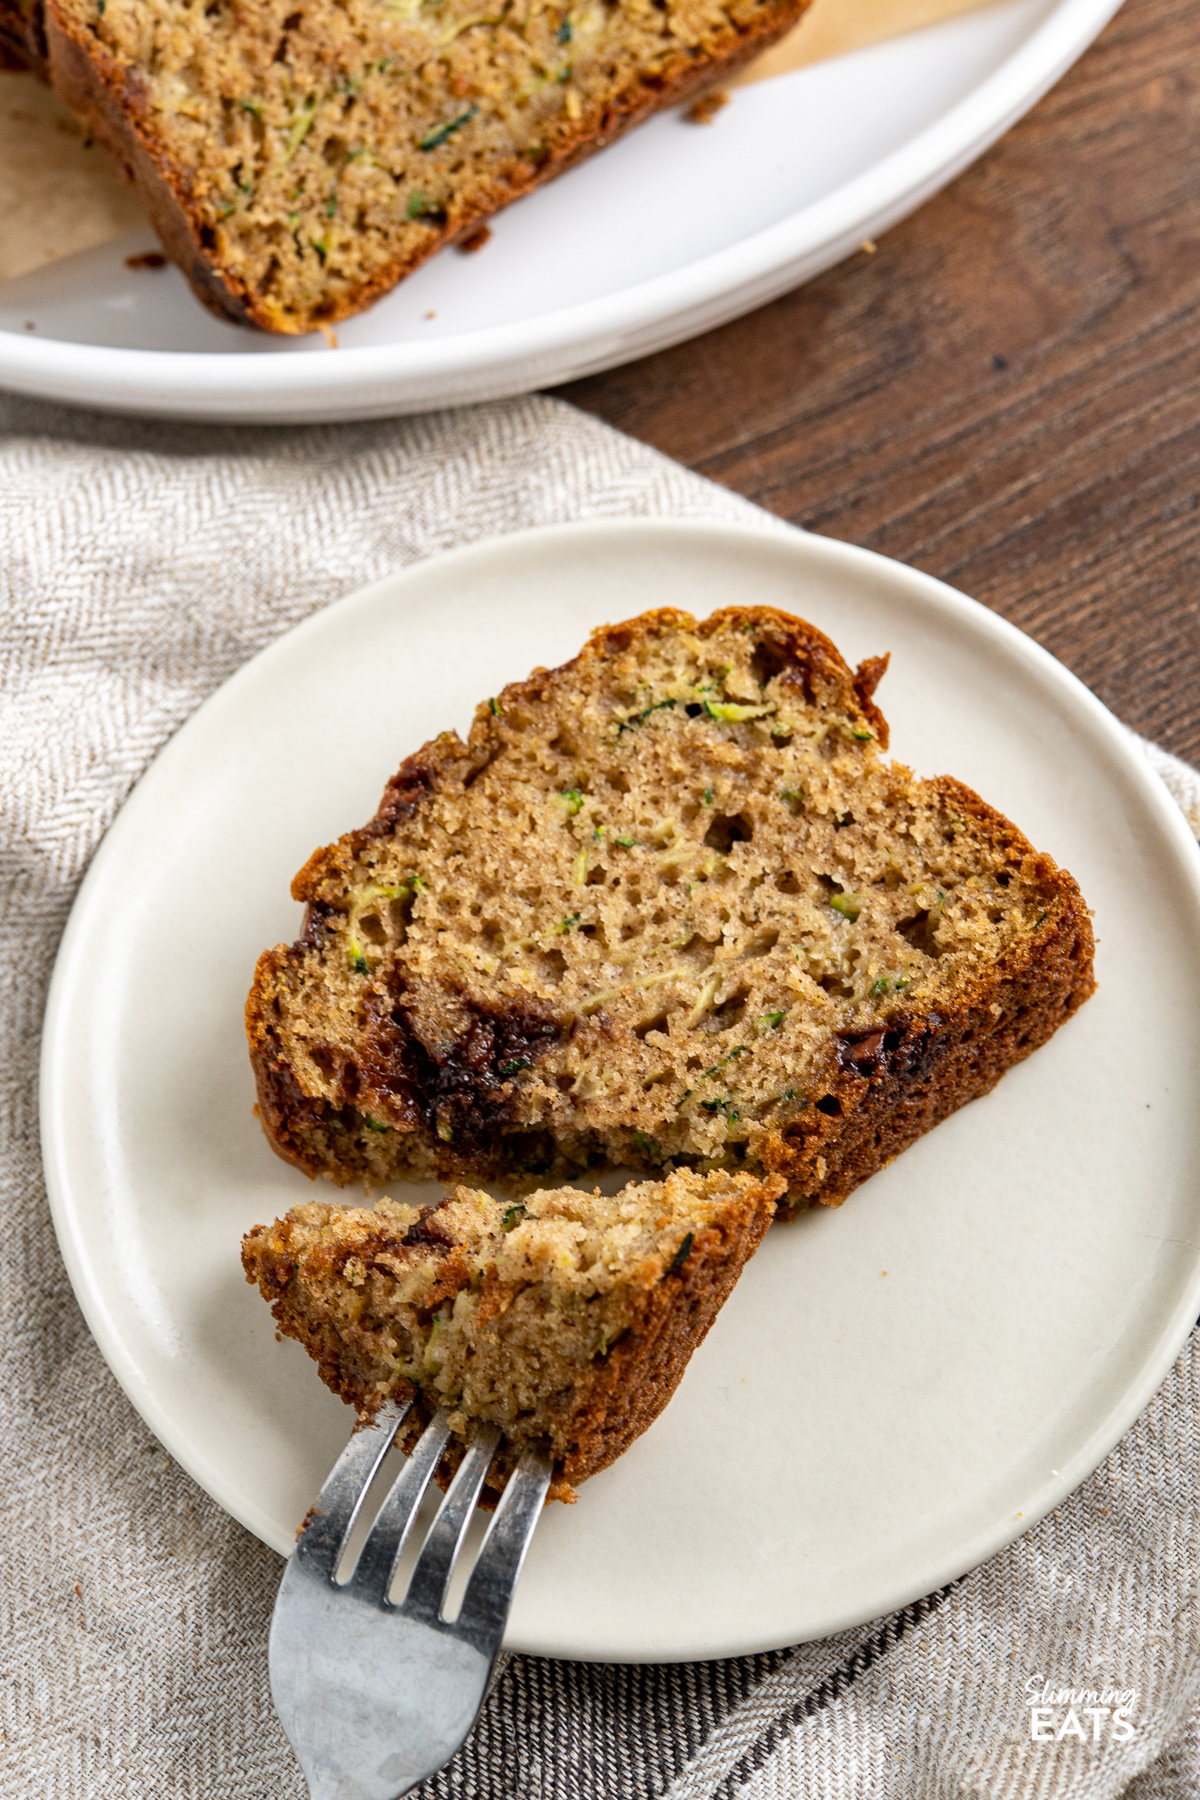 slice of Chocolate Chip Zucchini Bread on white plate